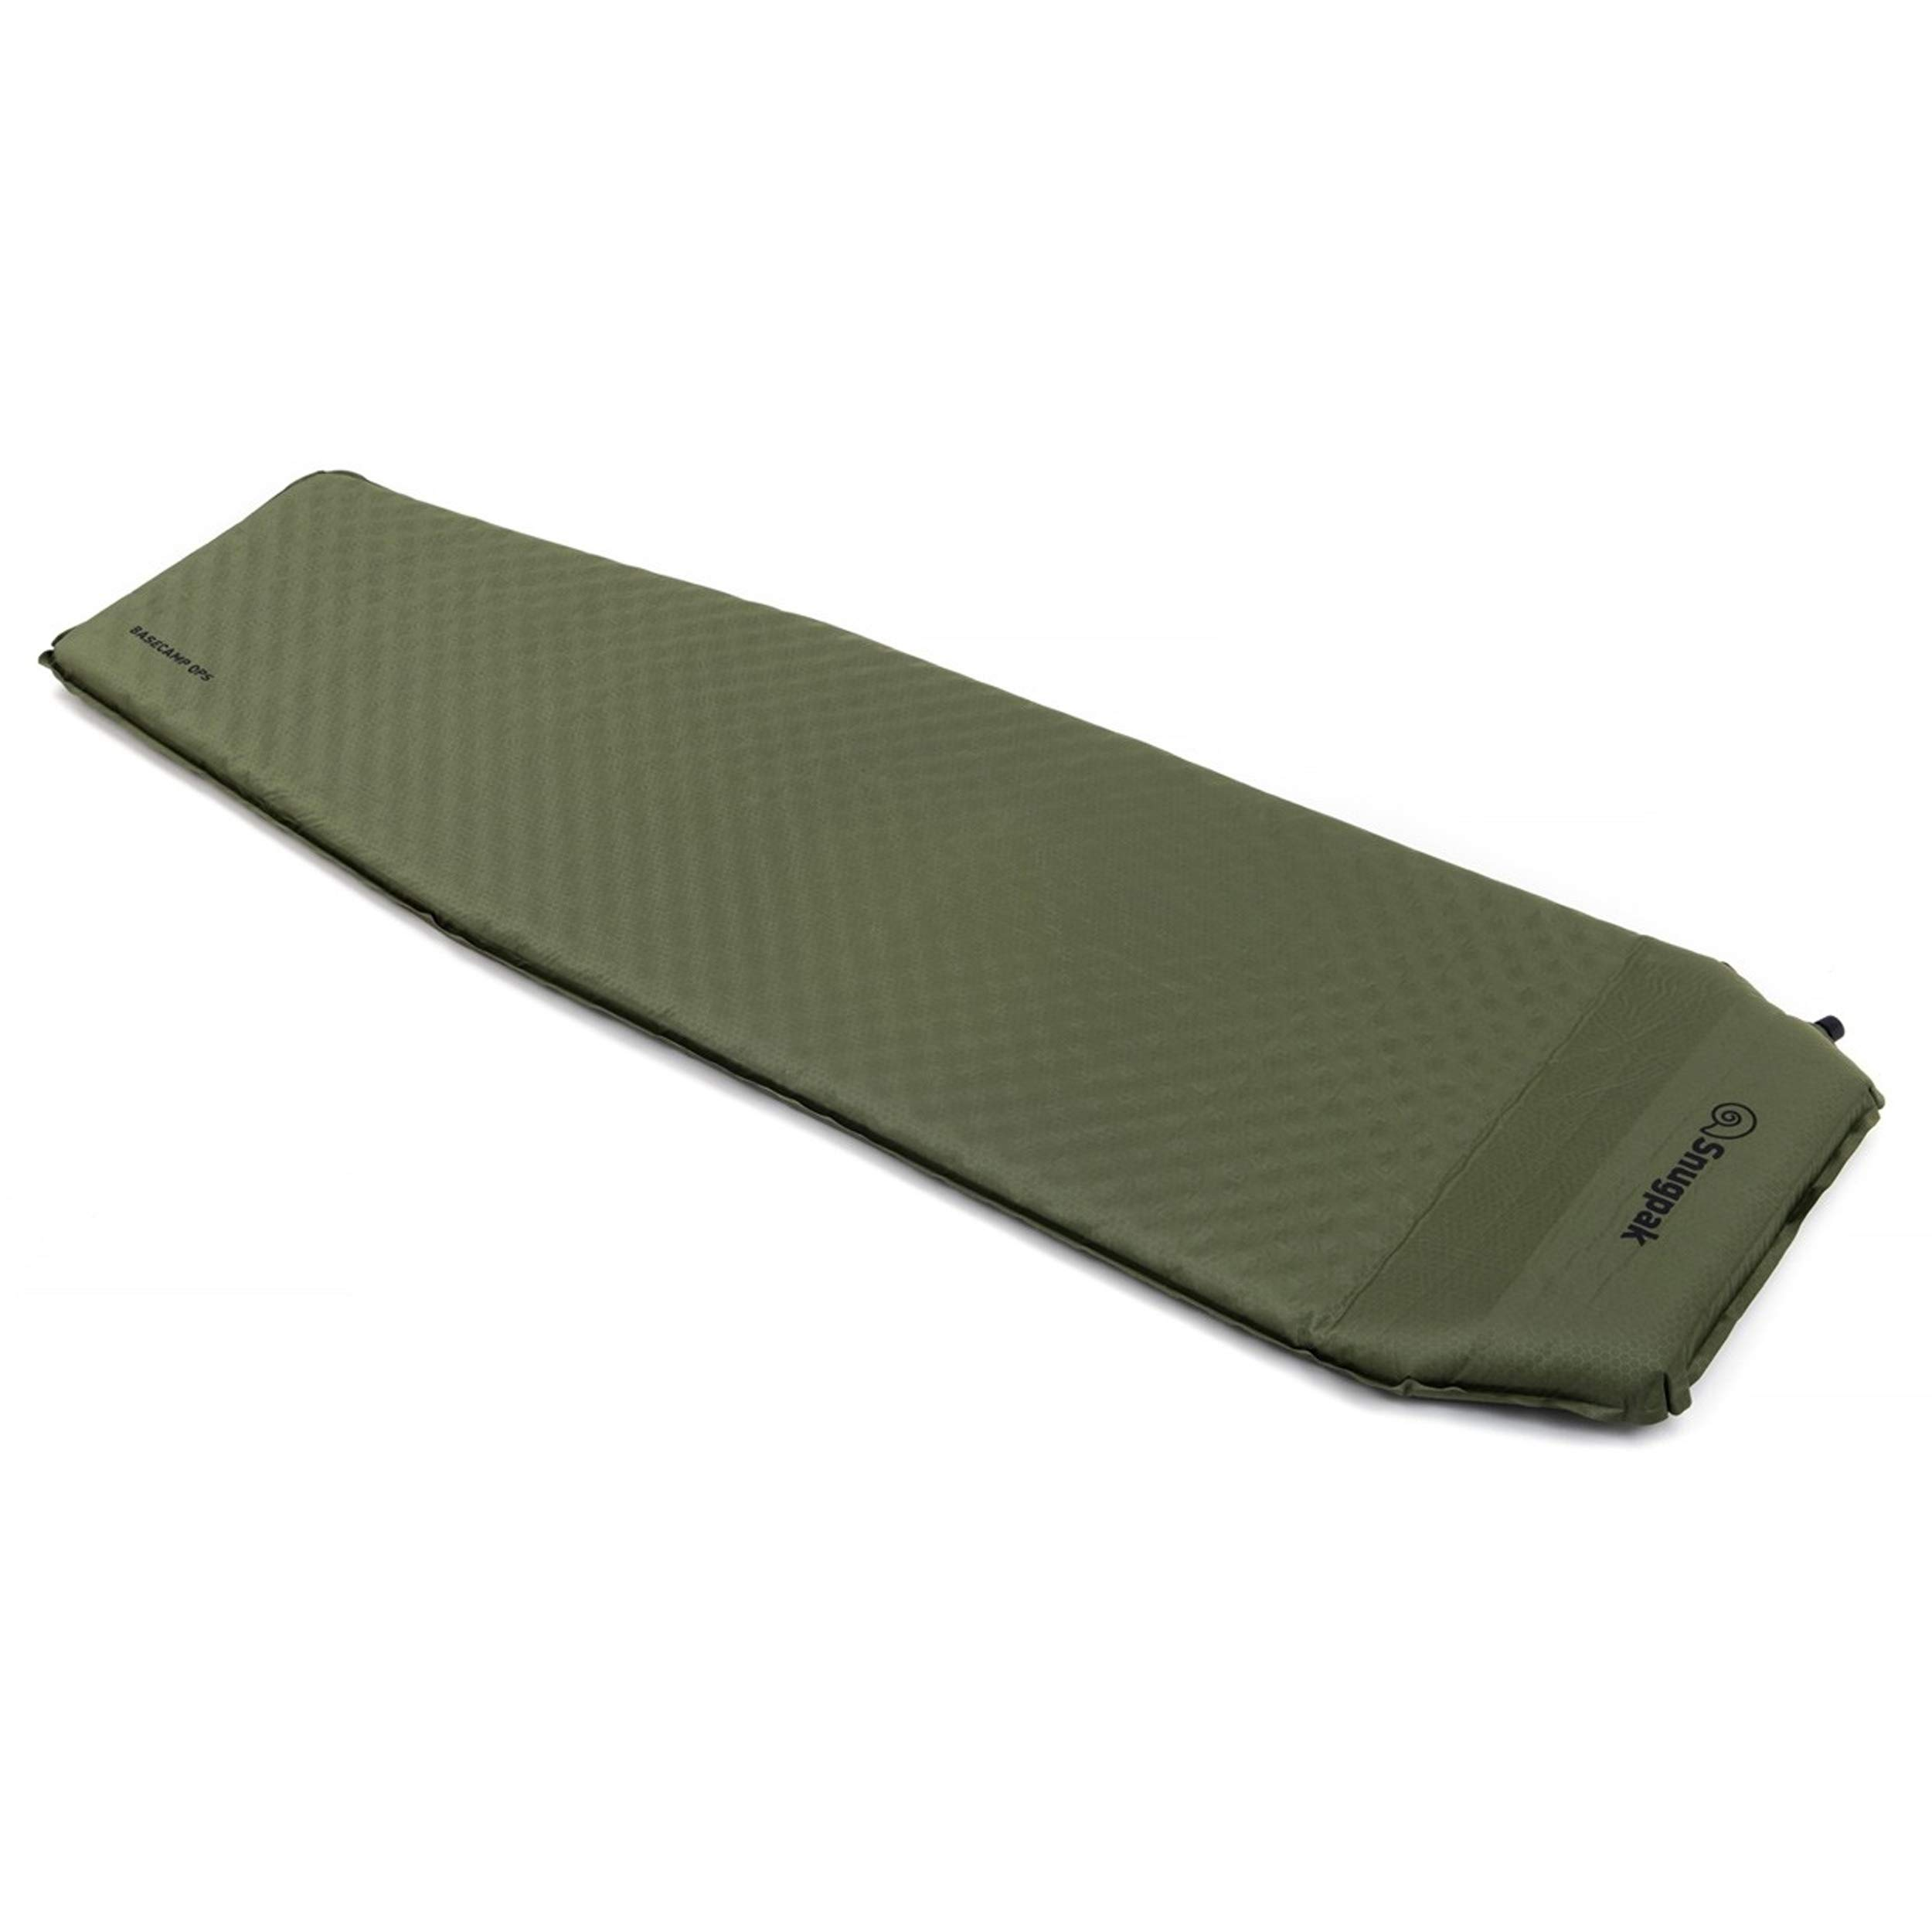 Snugpak Elite Oversized Self Inflating Mat with Built In Pillow and Non-Slip Bottom, Olive by Snugpak